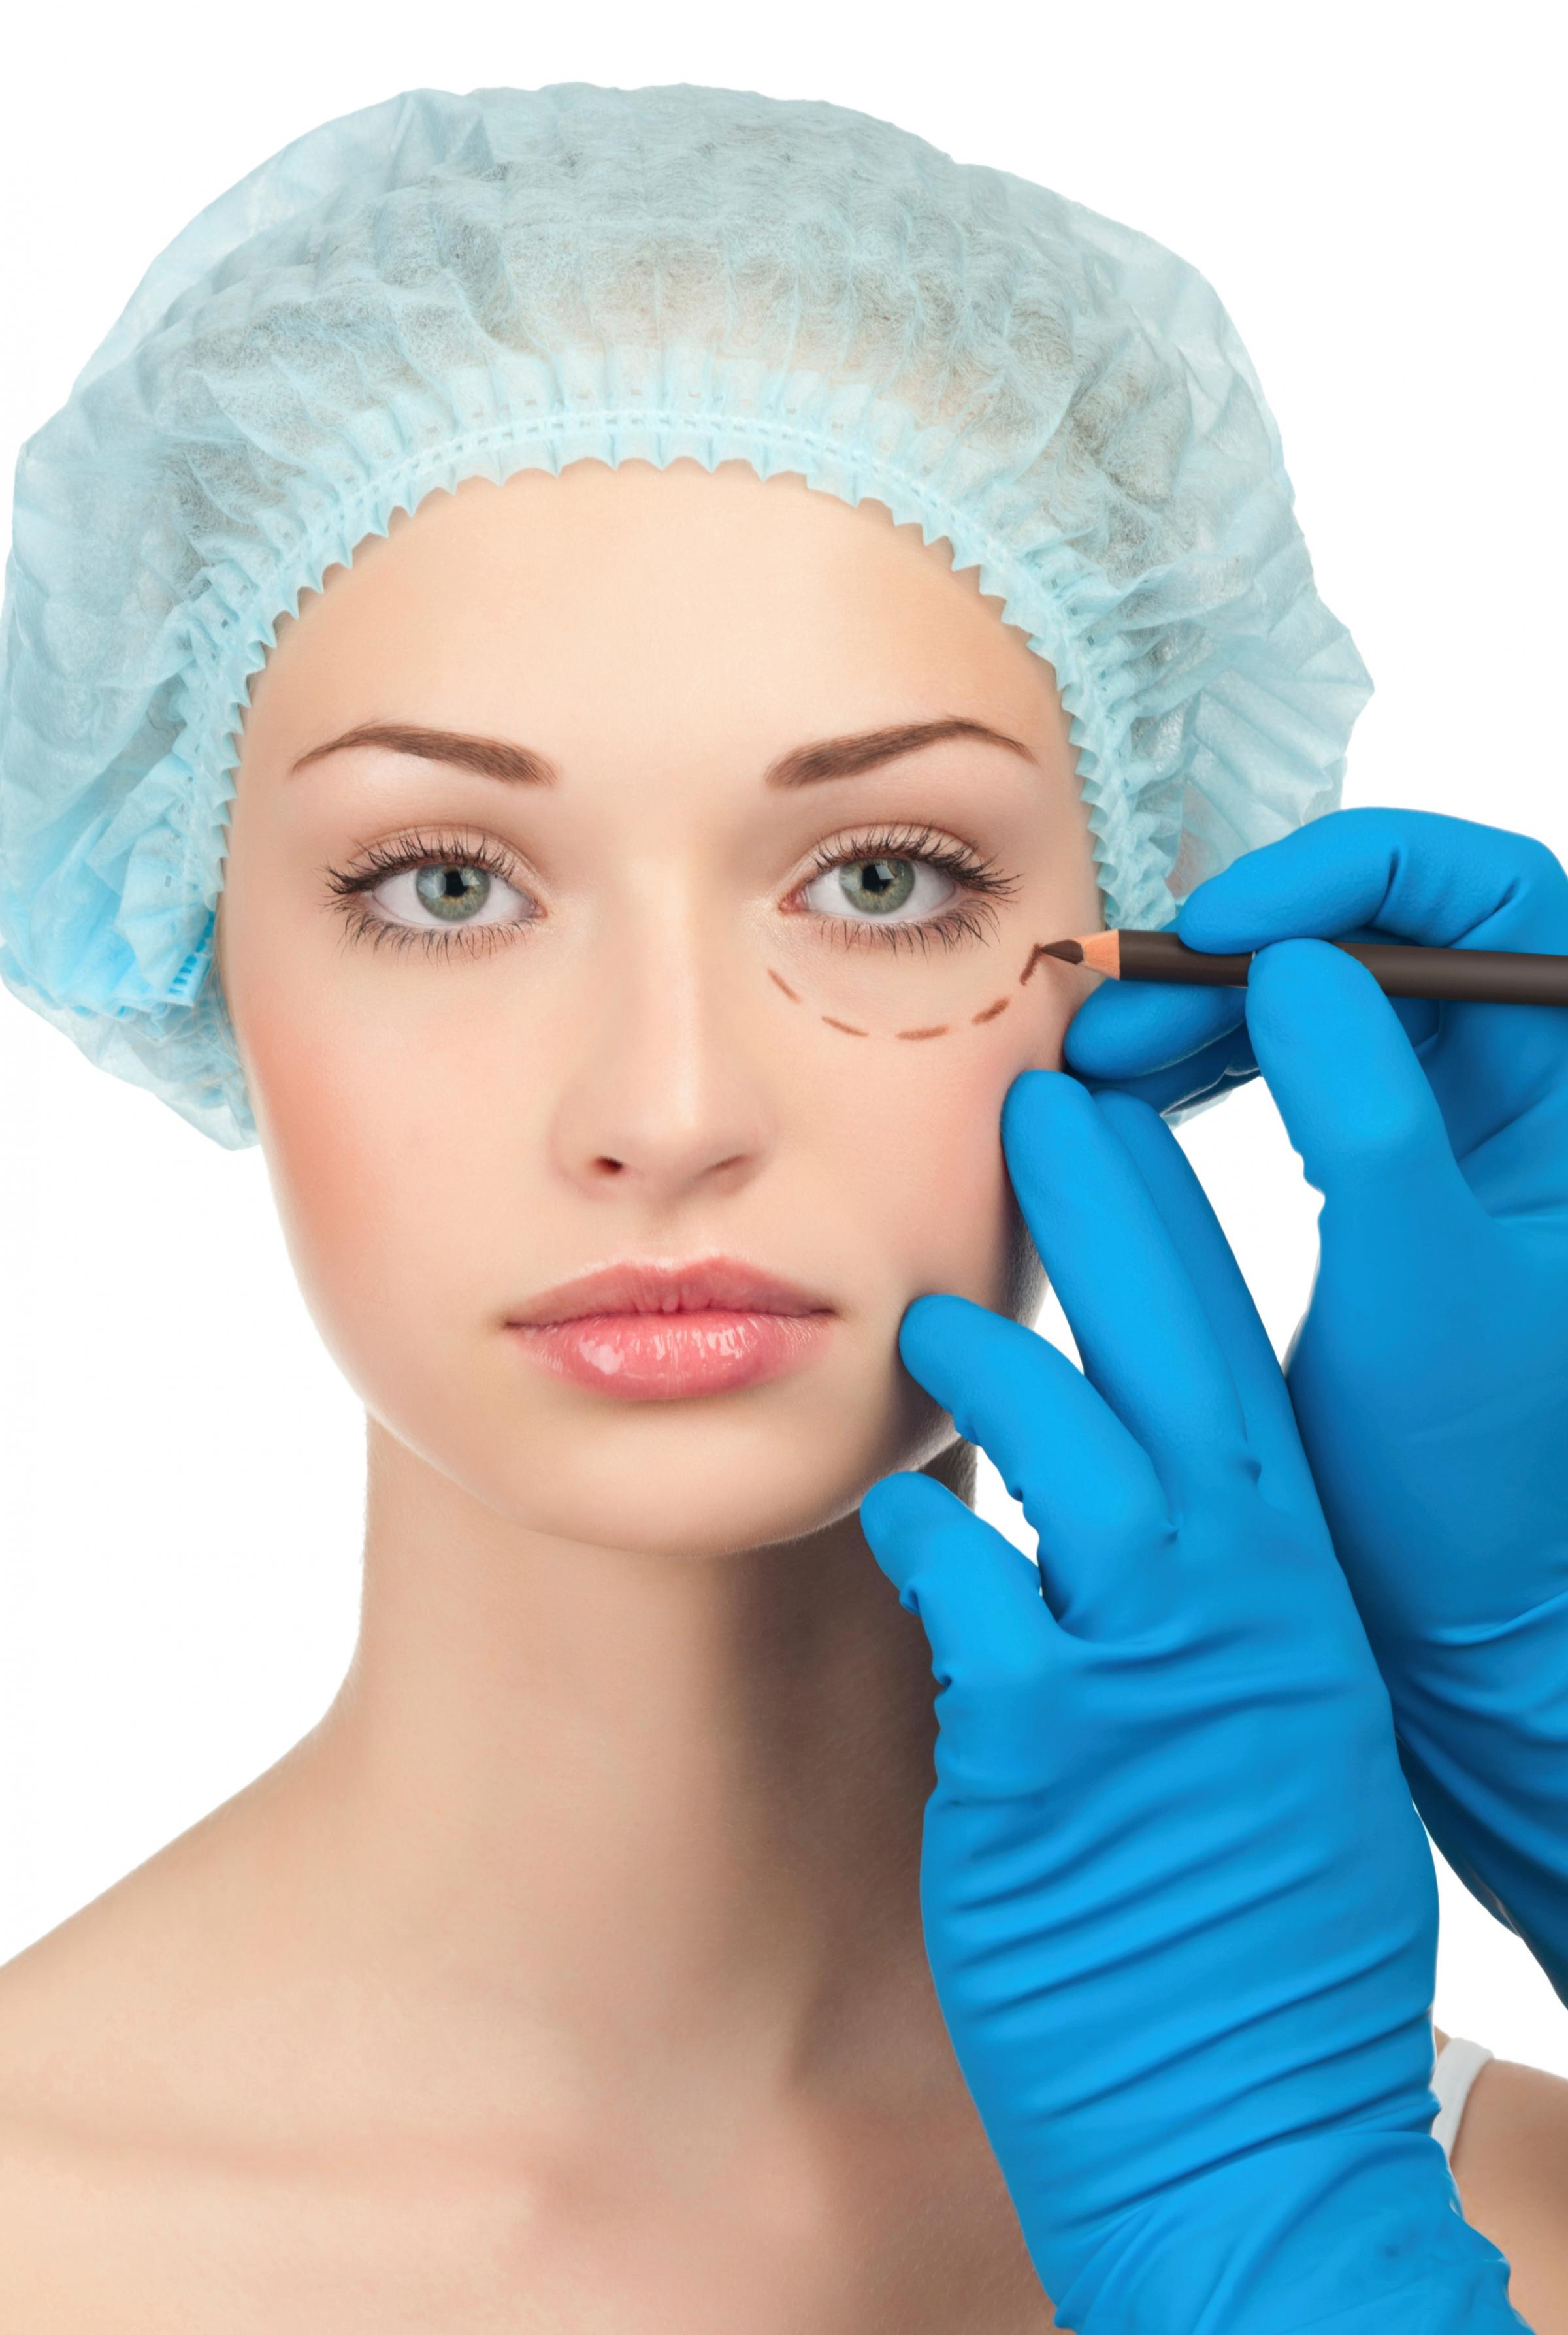 Interest in cosmetic surgery has risen in the